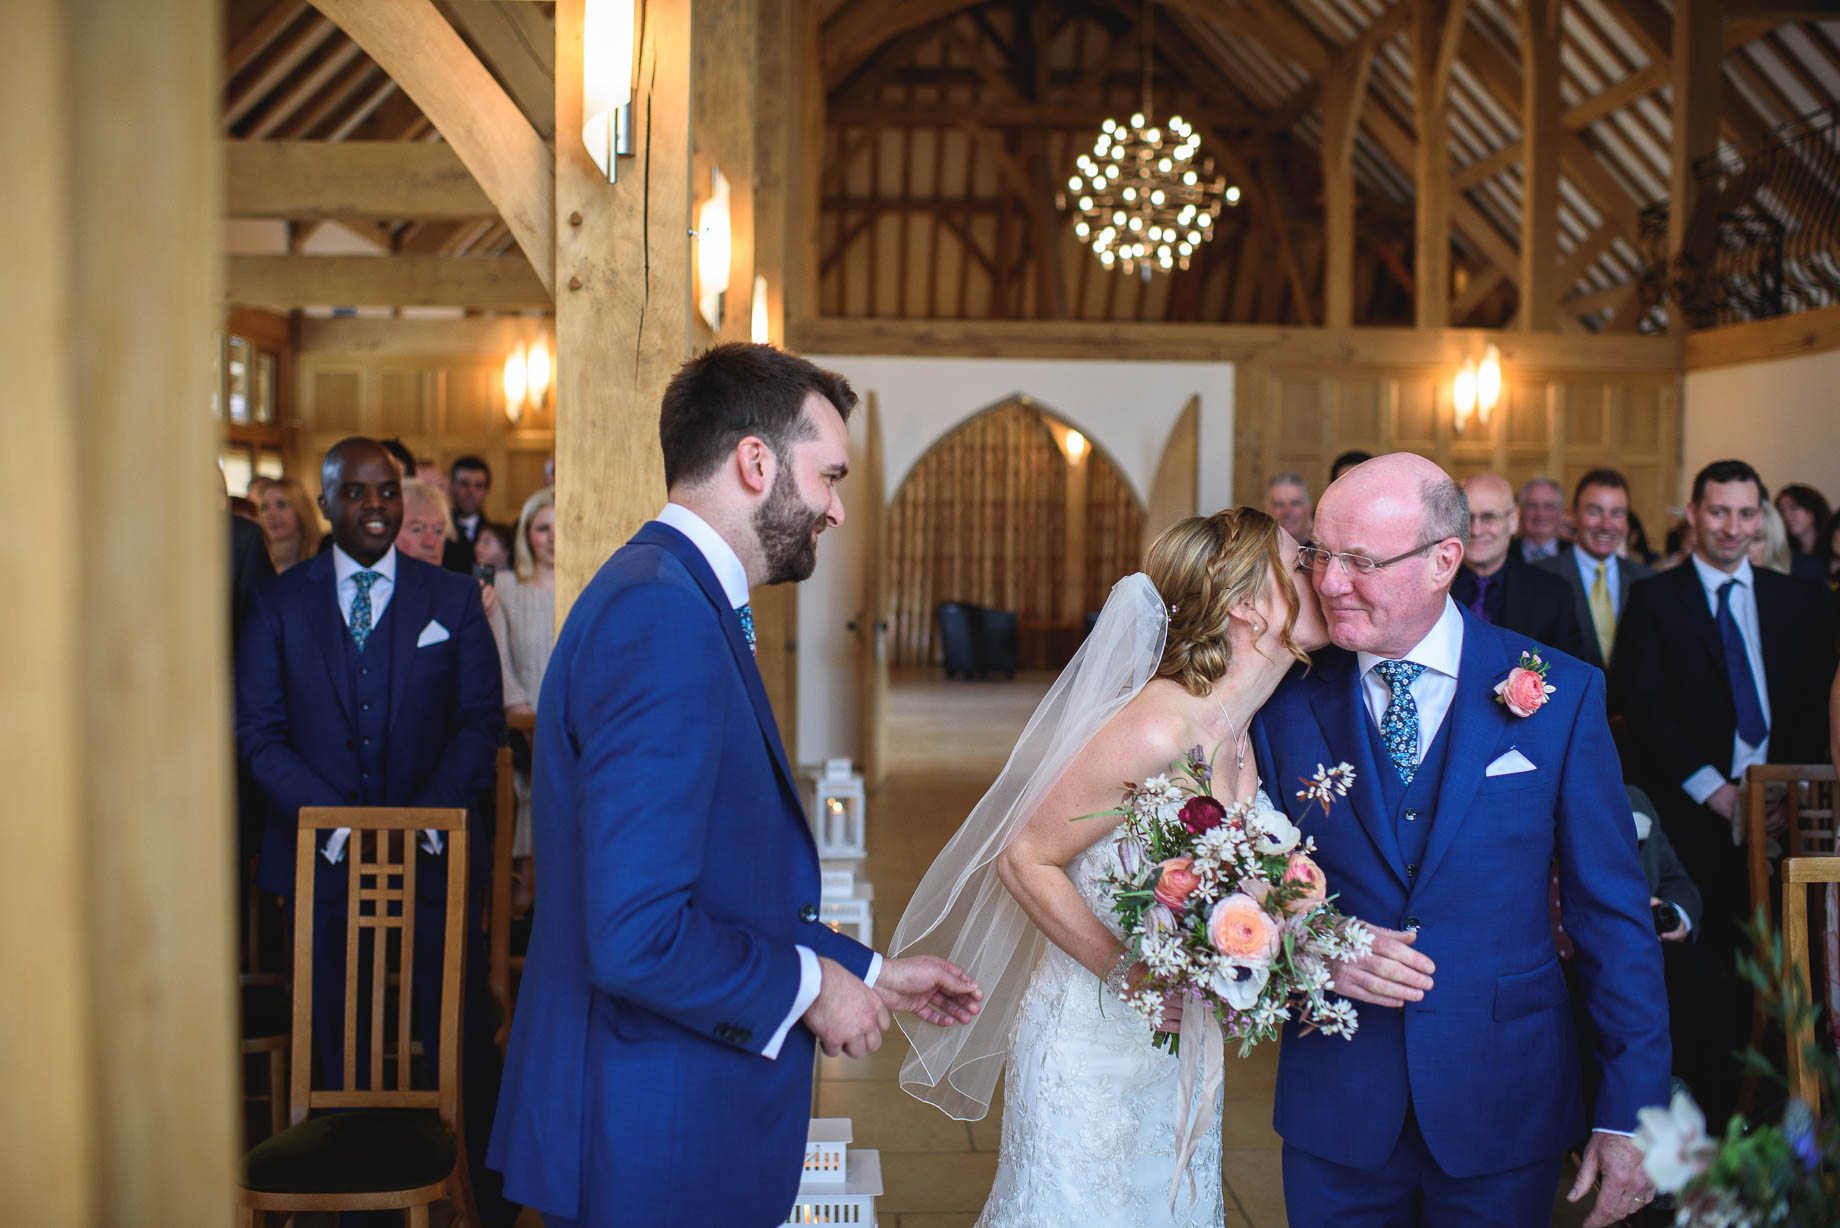 Rivervale Barn wedding photography by Guy Collier - Claire and Simon (55 of 133)